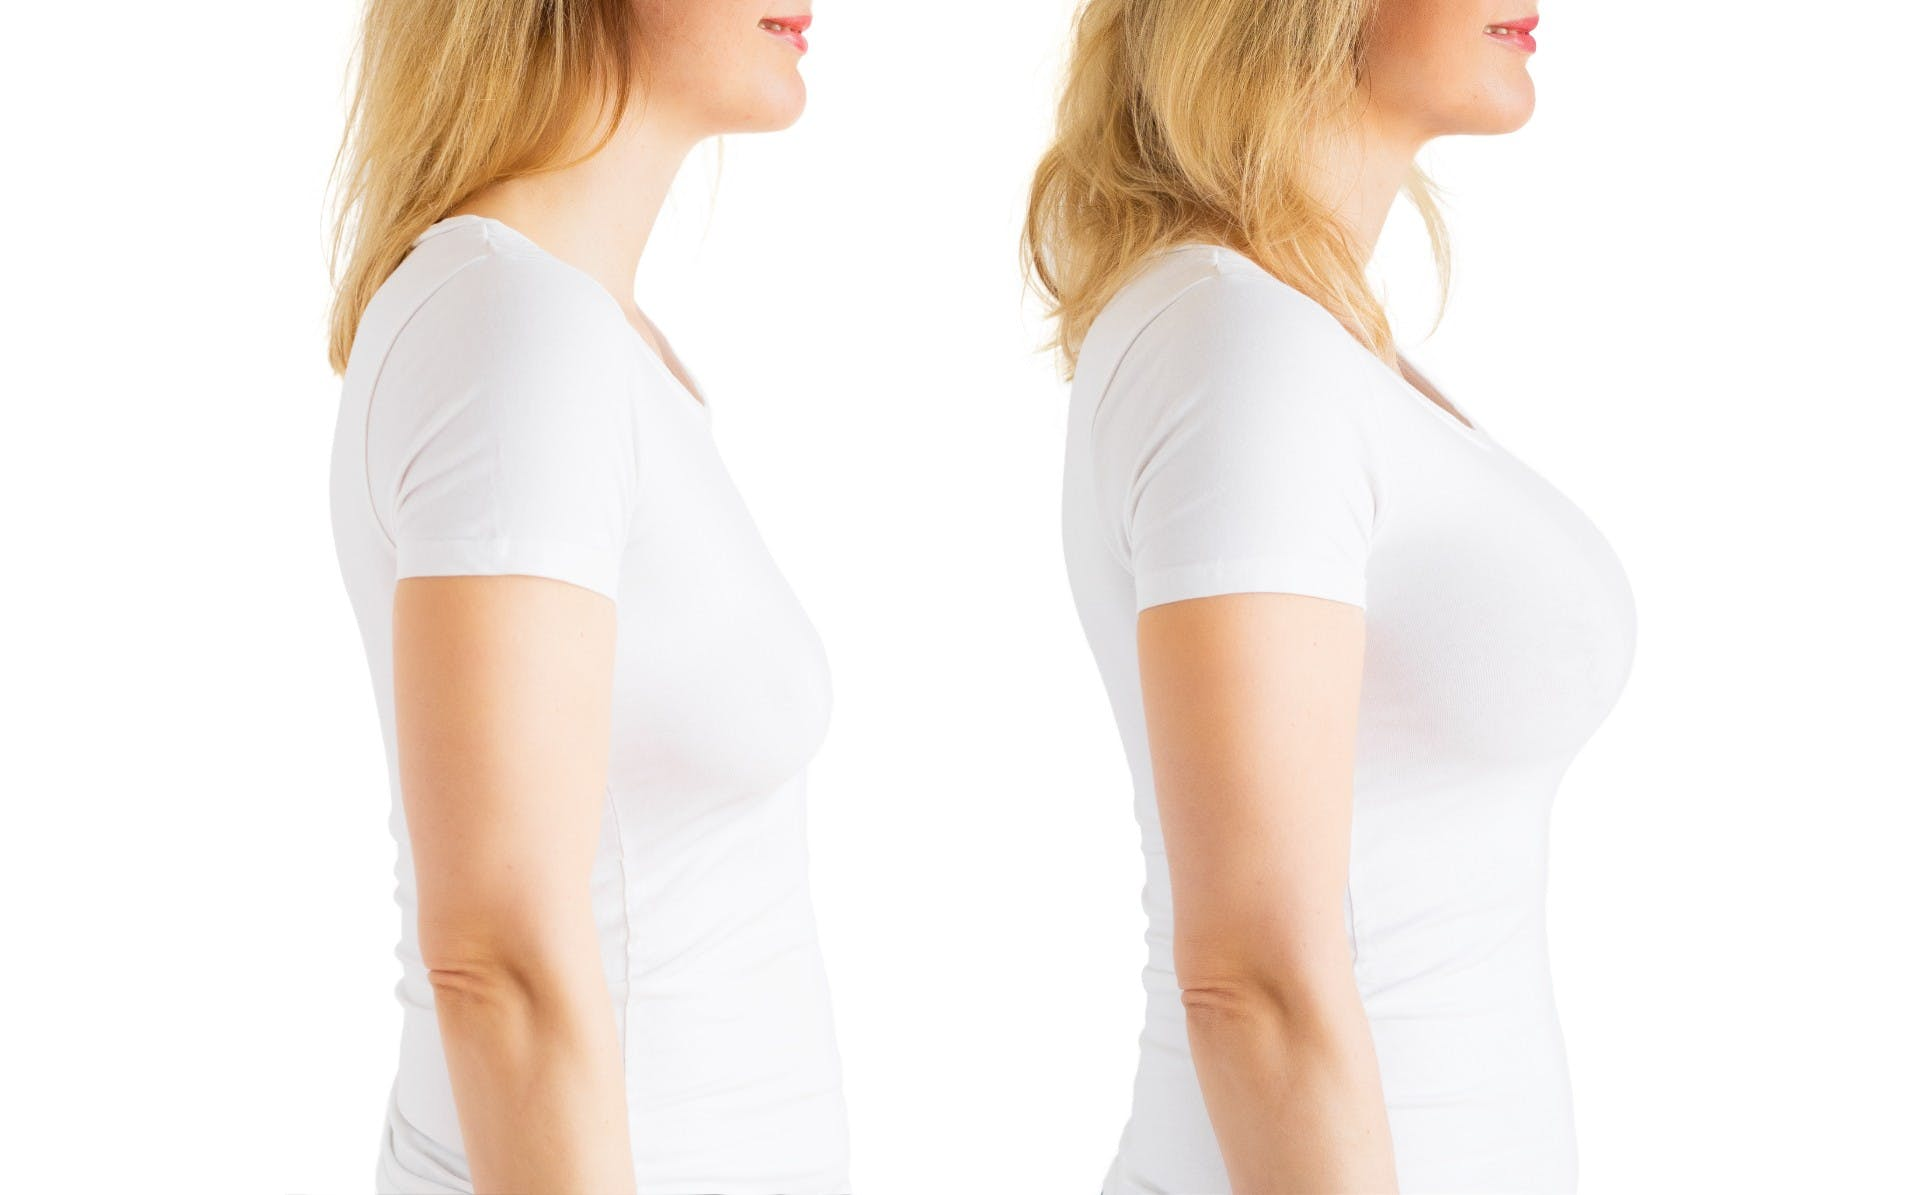 Woman before and after breast augmentation